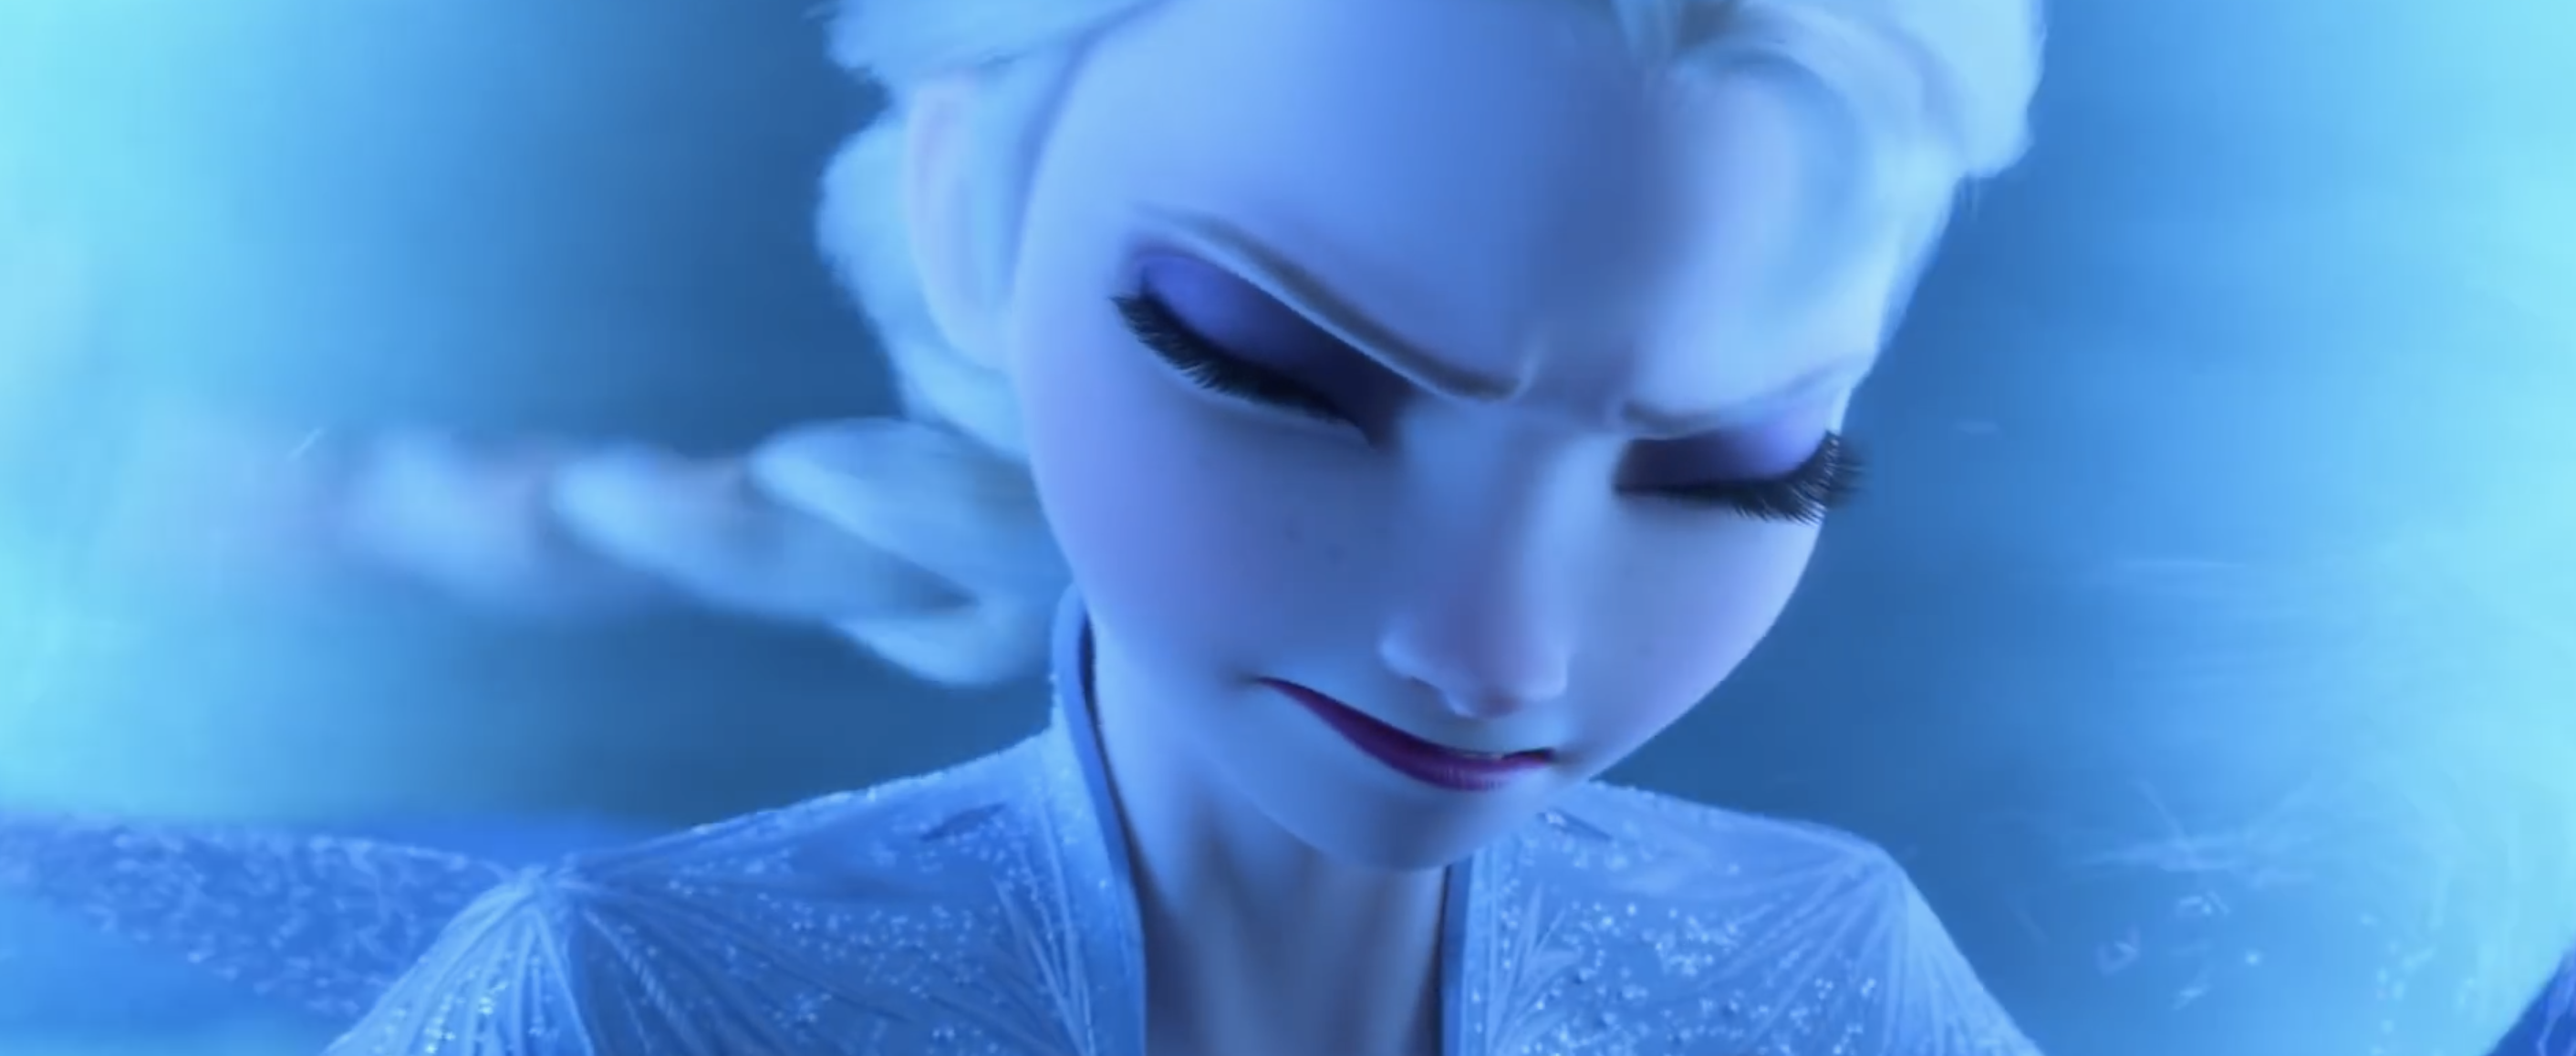 Elsa concentrates very hard while using her powers